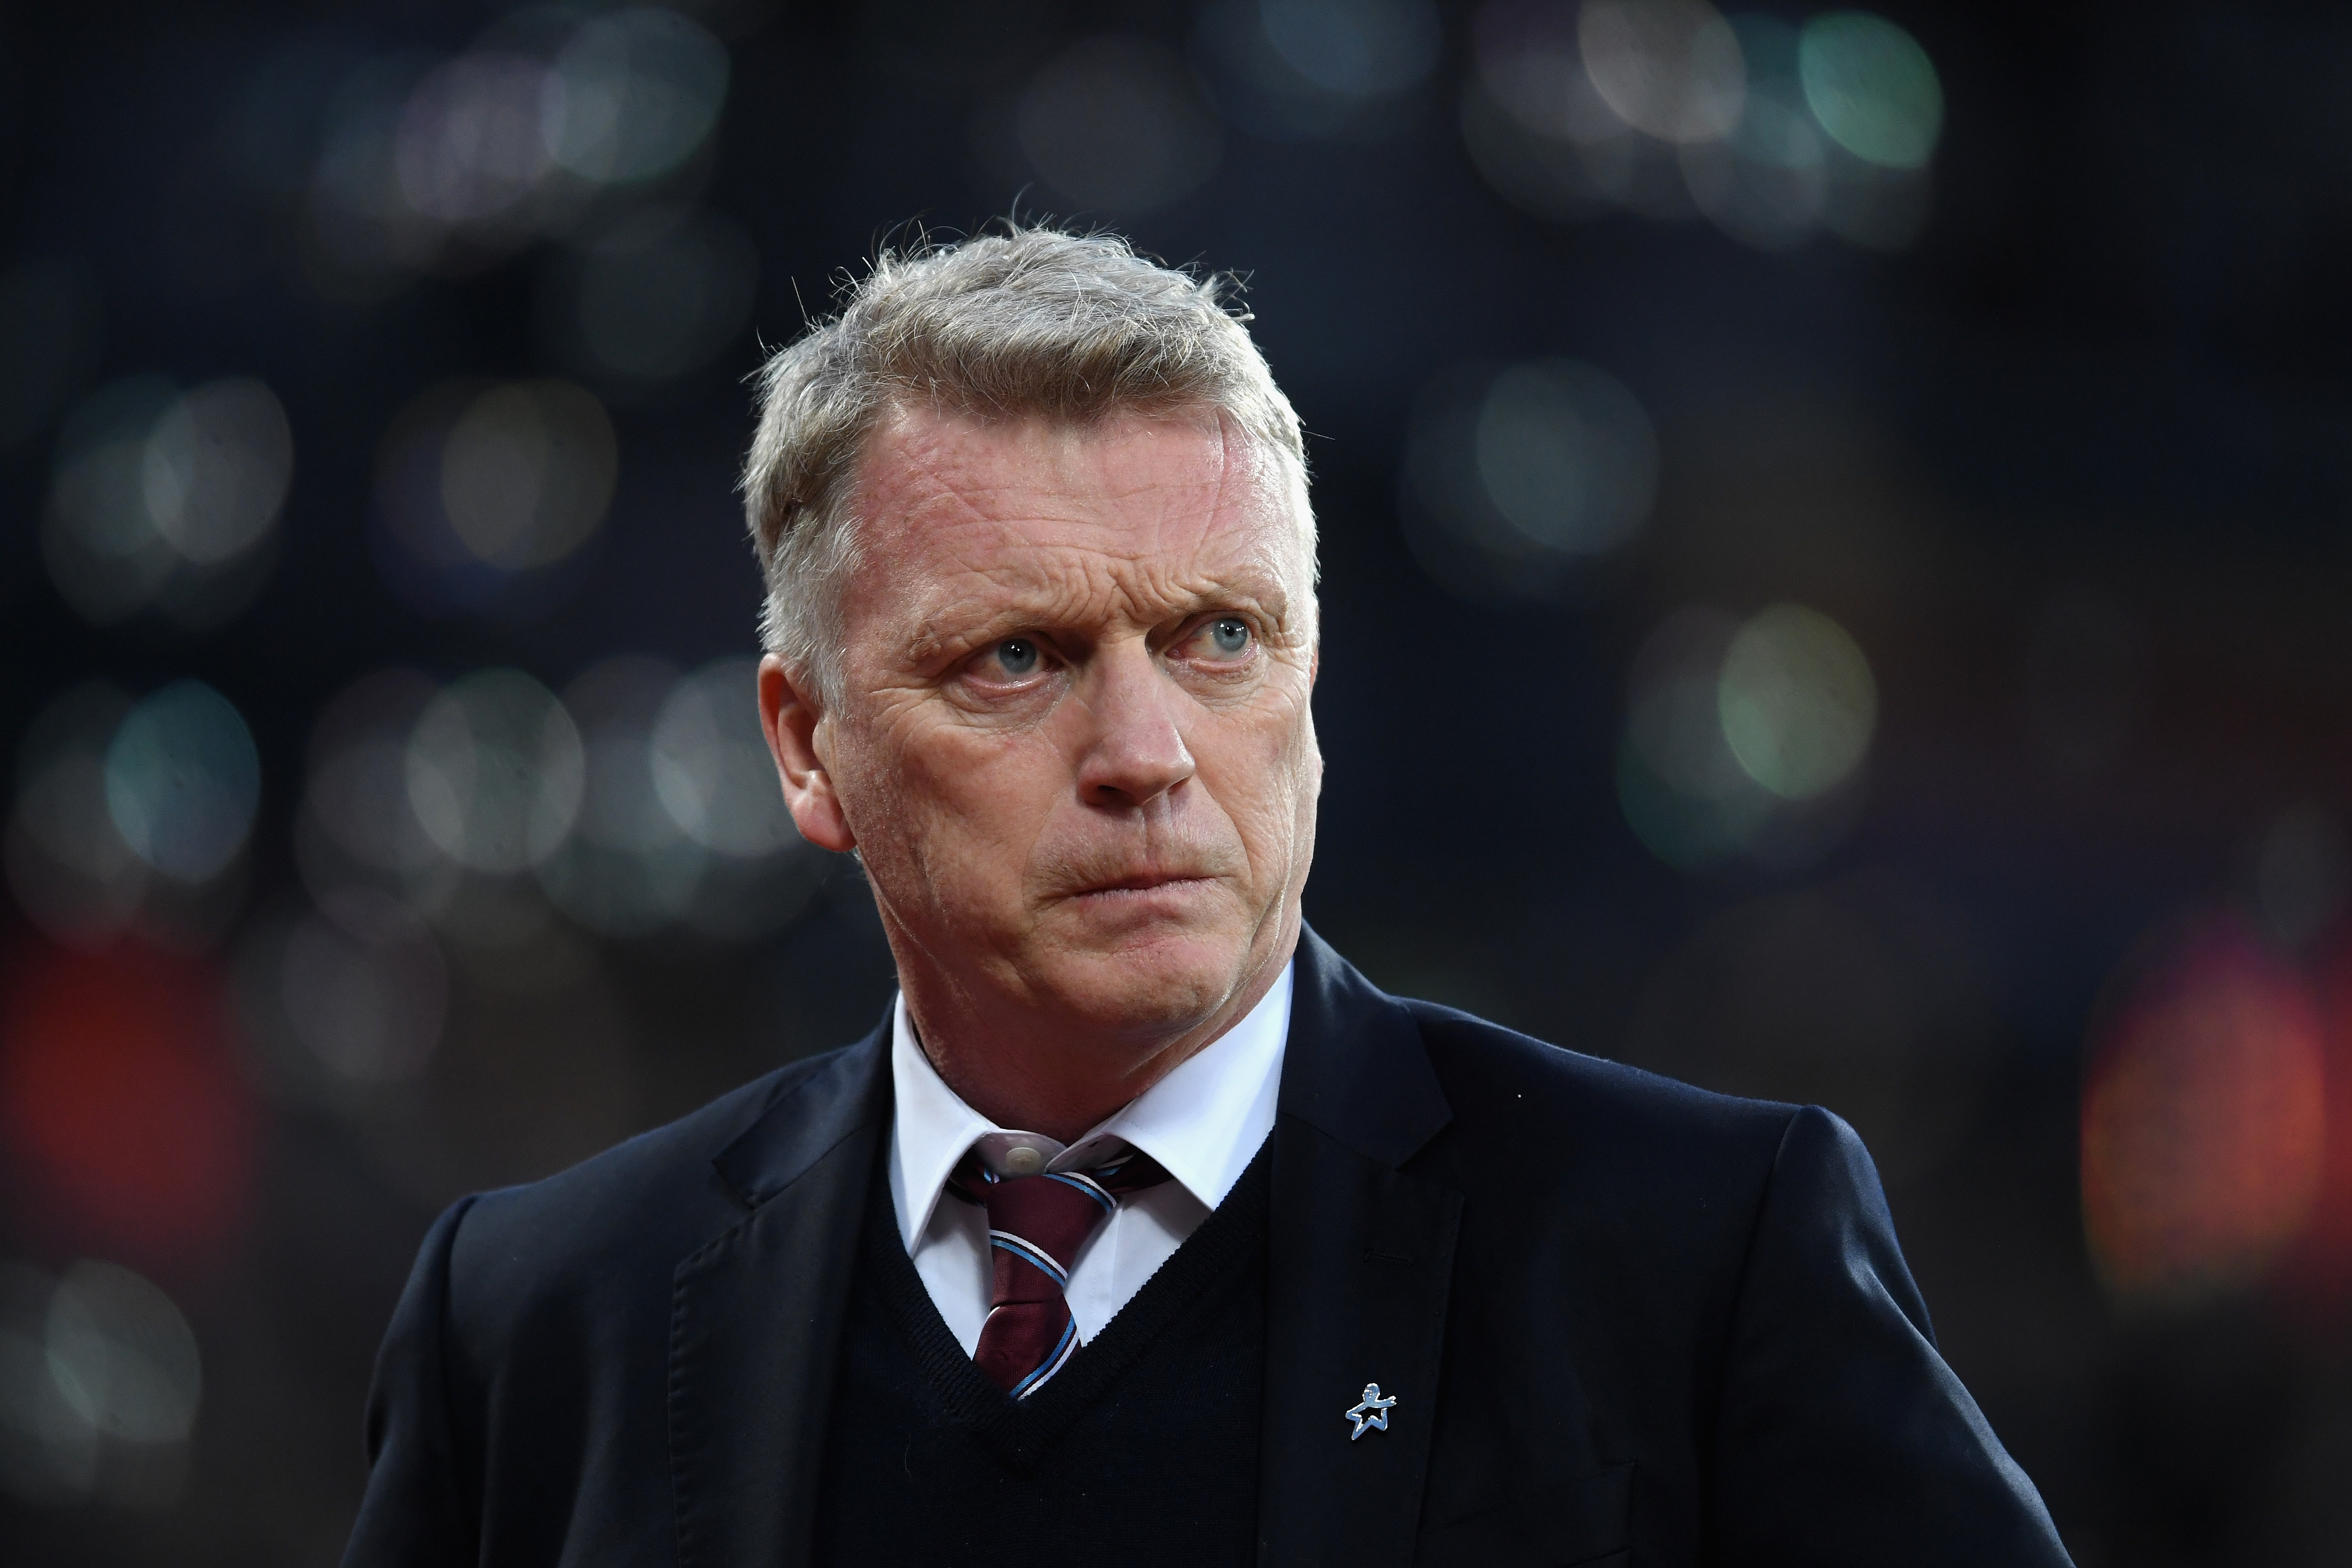 David Moyes will not bein the West Ham dugout (Photo by Mike Hewitt/Getty Images)